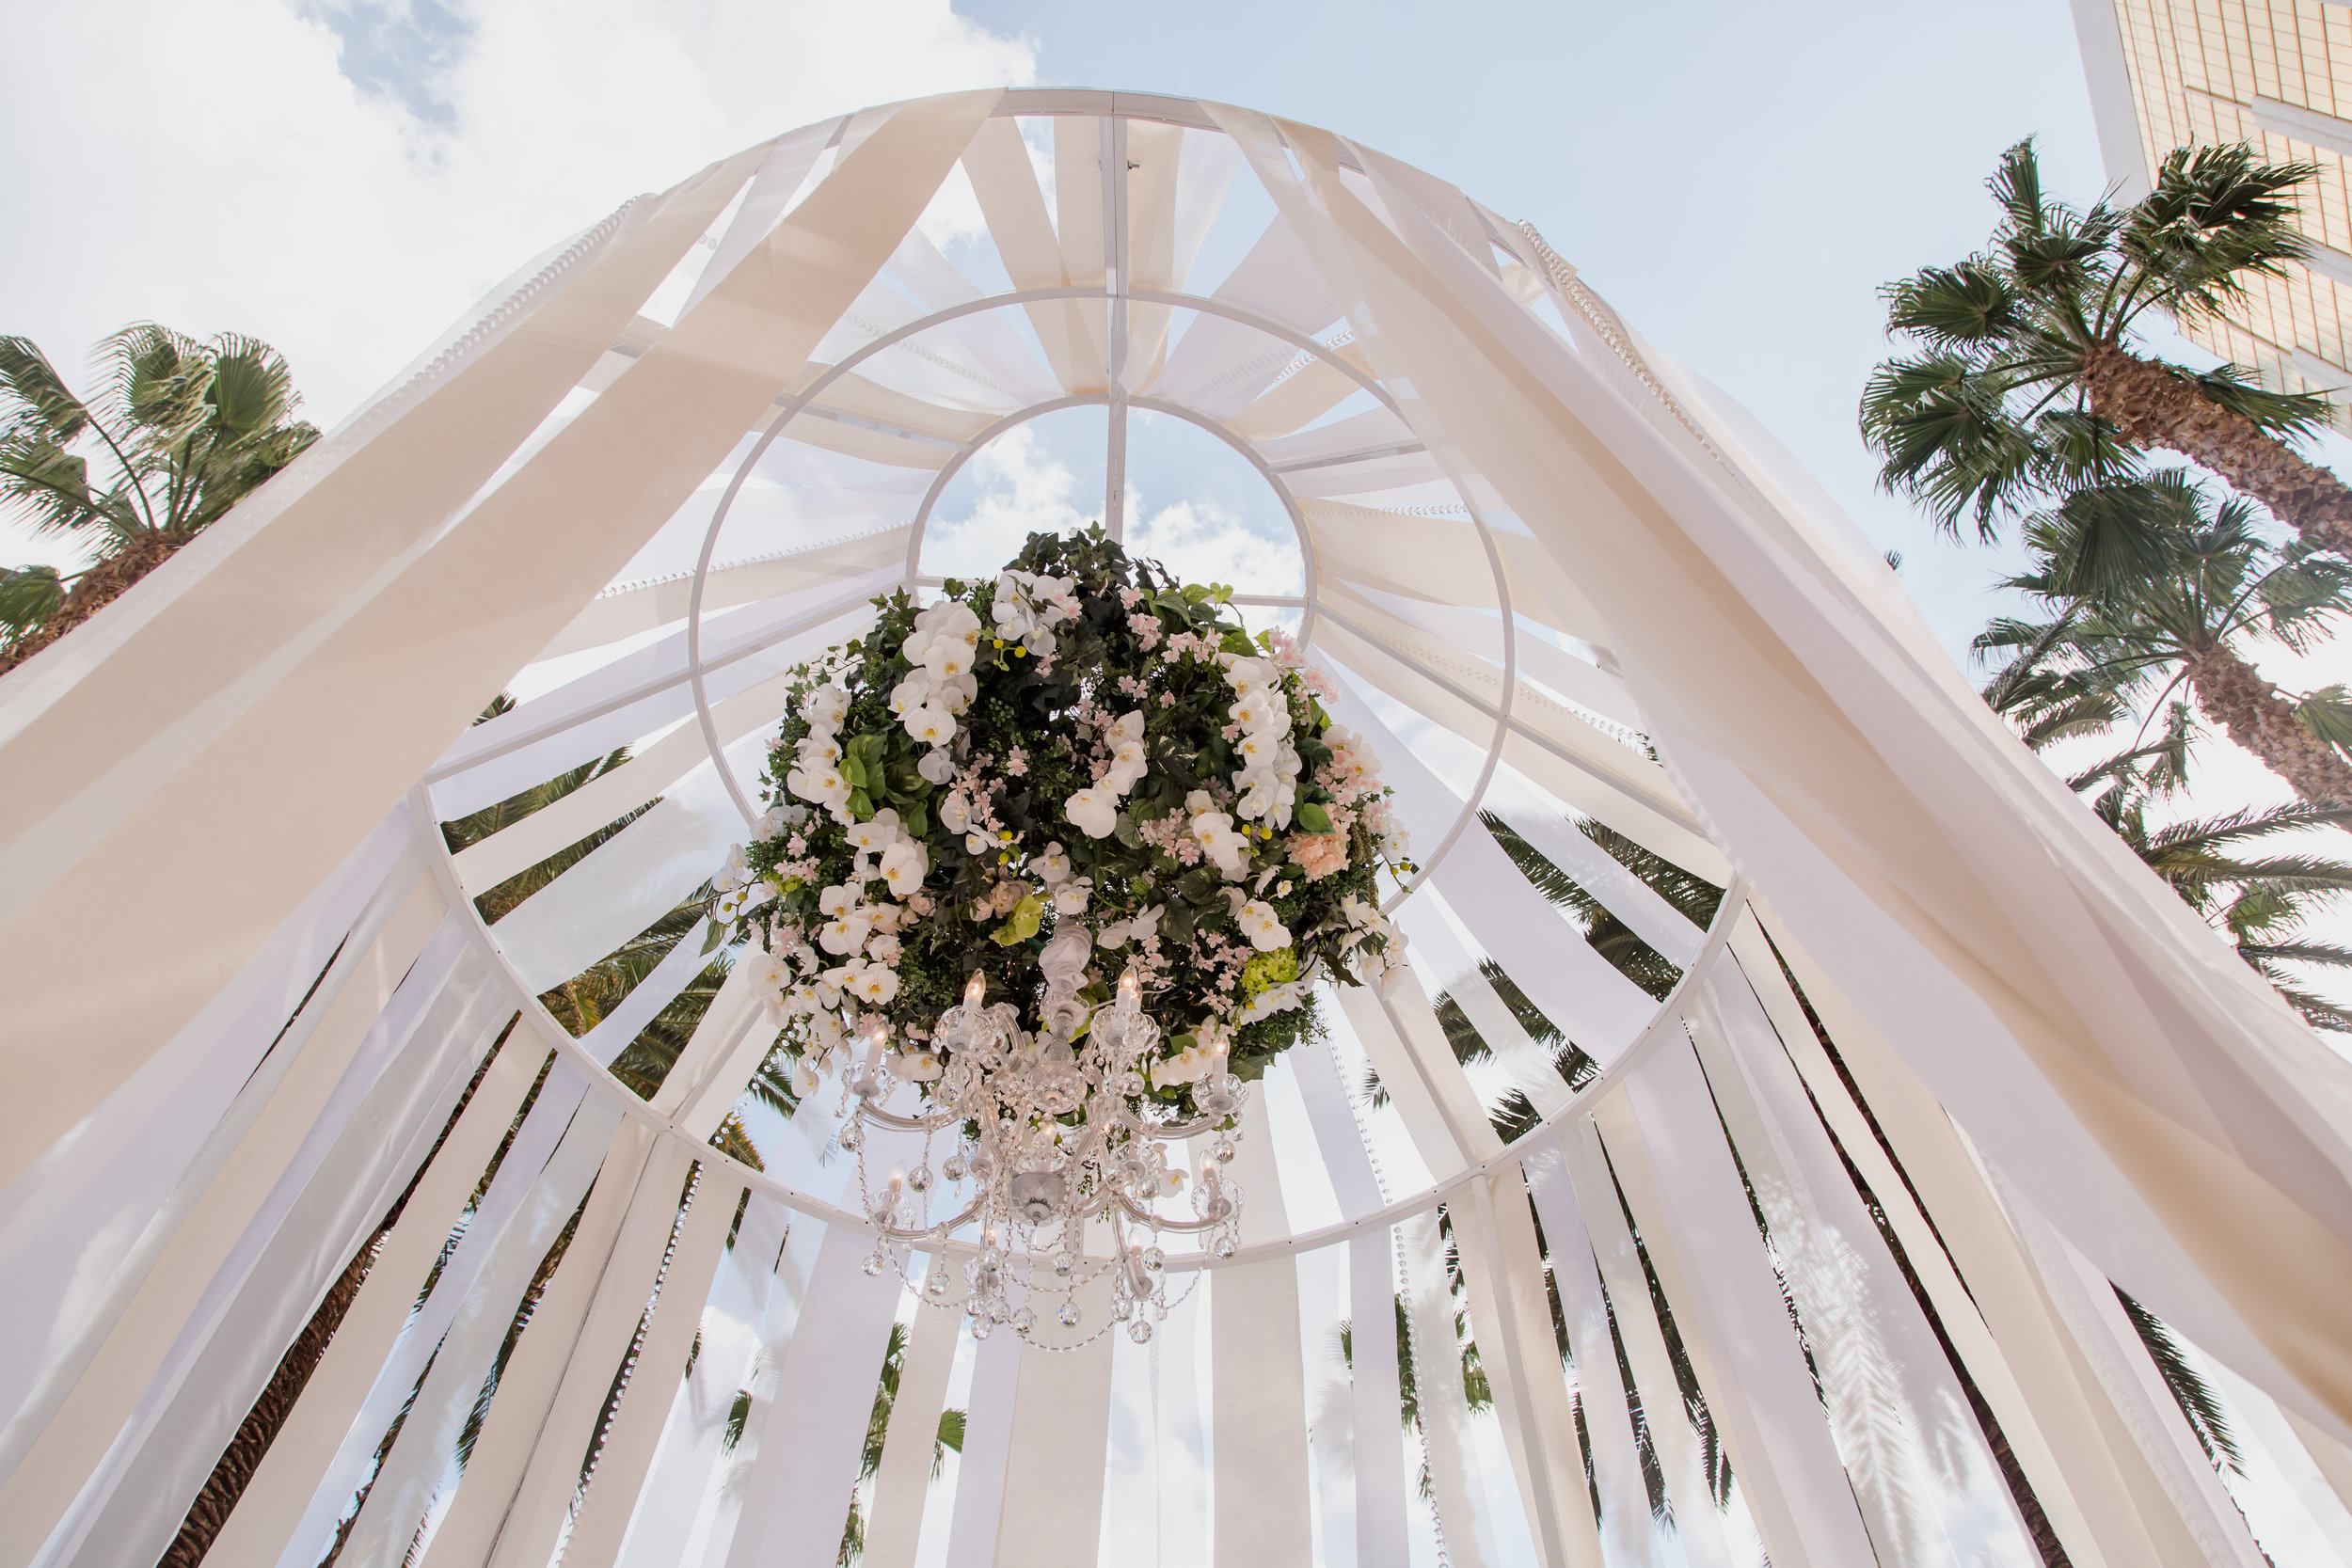 Birdcage and ribbon ceremony stage with floral chandelier. Destination Wedding Planner  Andrea Eppolito ·Photos by  Adam Frazier Photography ·Floral and Decor by  Destinations by Design · Lighting by  LED Unplugged ·Venue · Invitations  Ceci New York  · Menus by  Alligator Soup